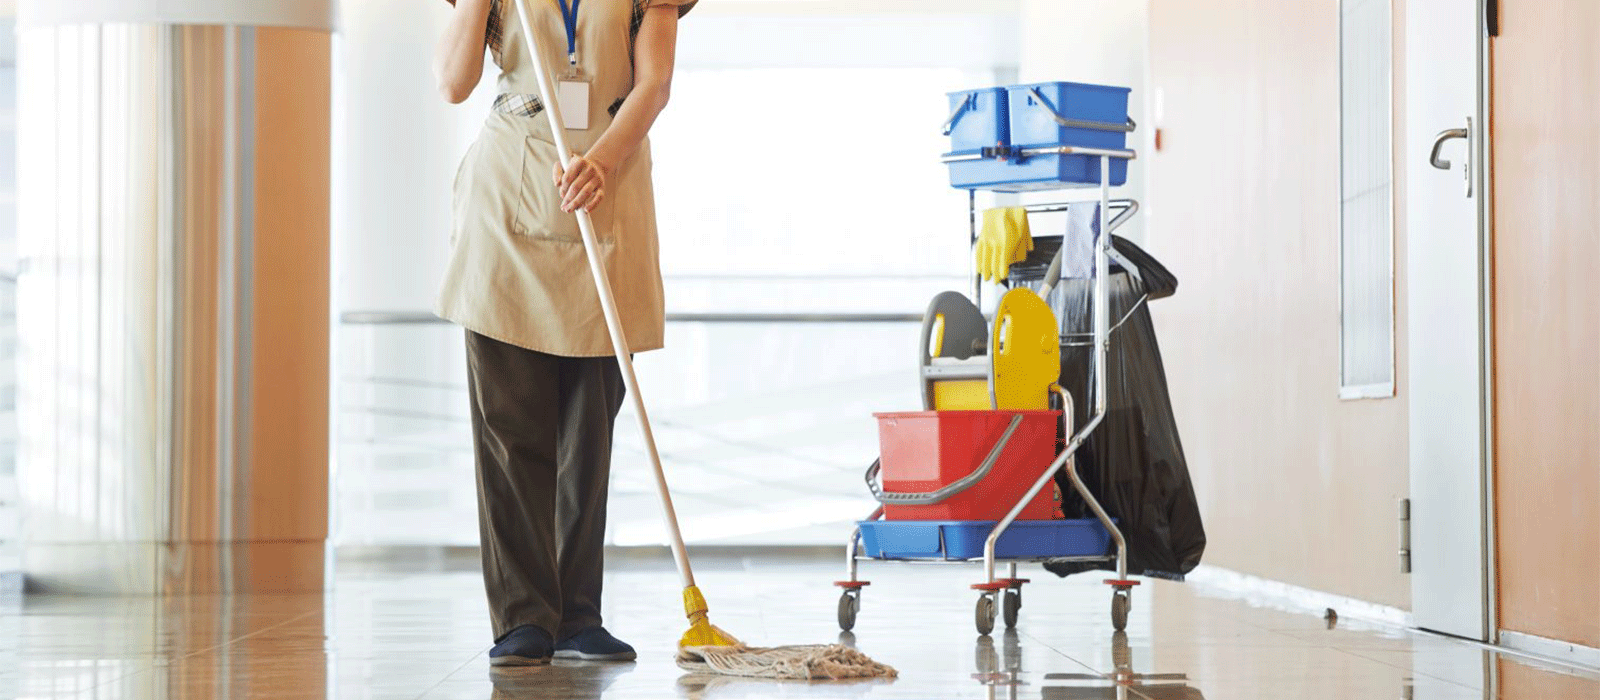 government grant for cleaning business in Bangor, Wales